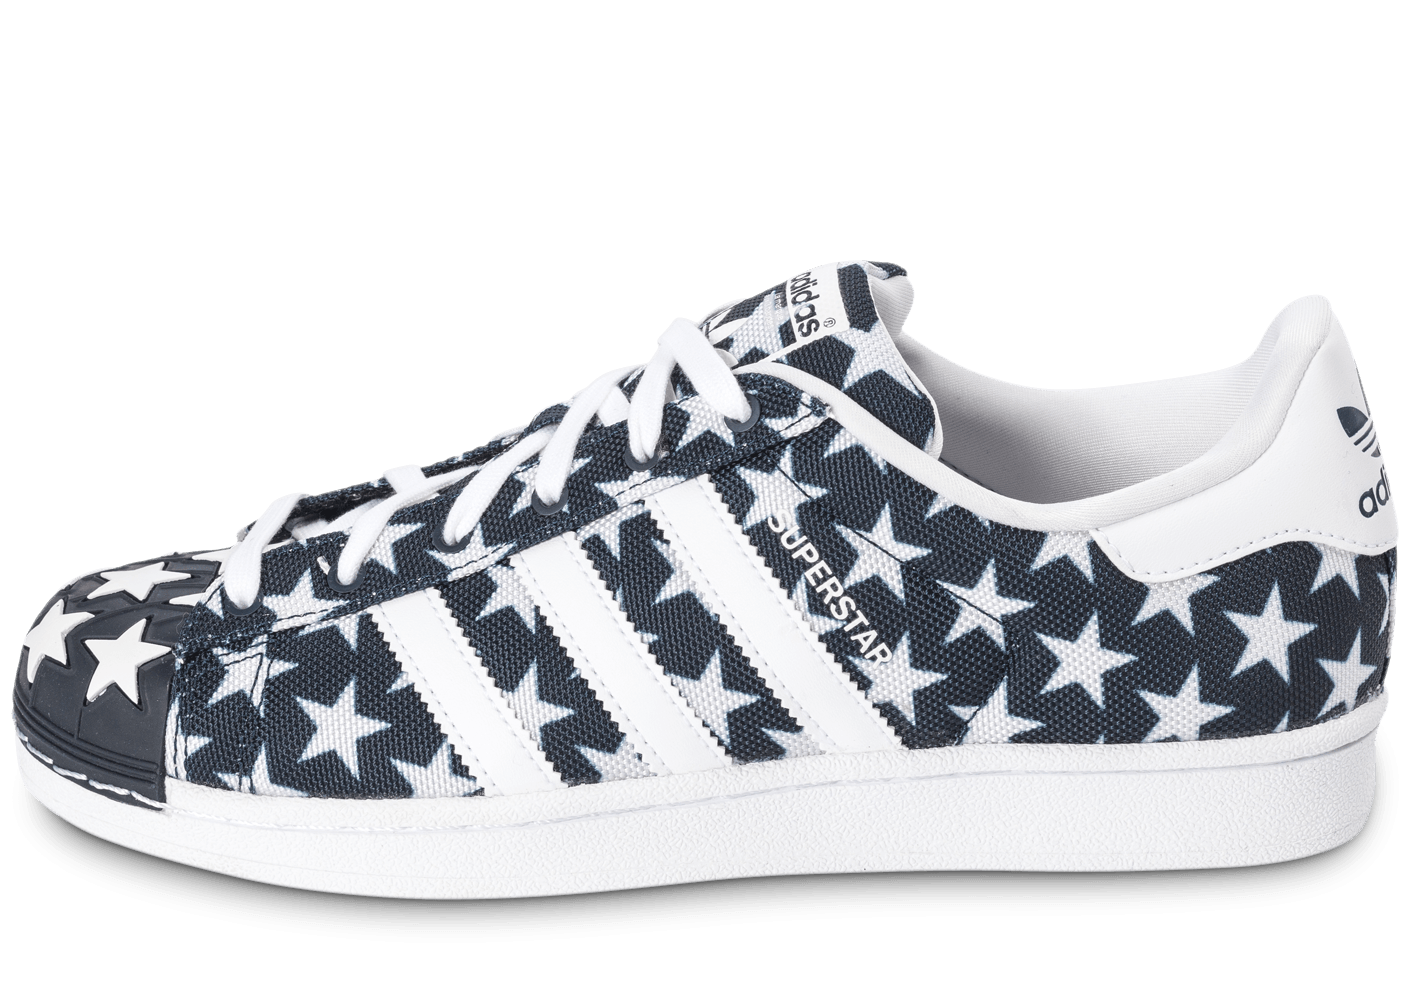 adidas superstar shell toe star pack bleu marine chaussures homme chausport. Black Bedroom Furniture Sets. Home Design Ideas